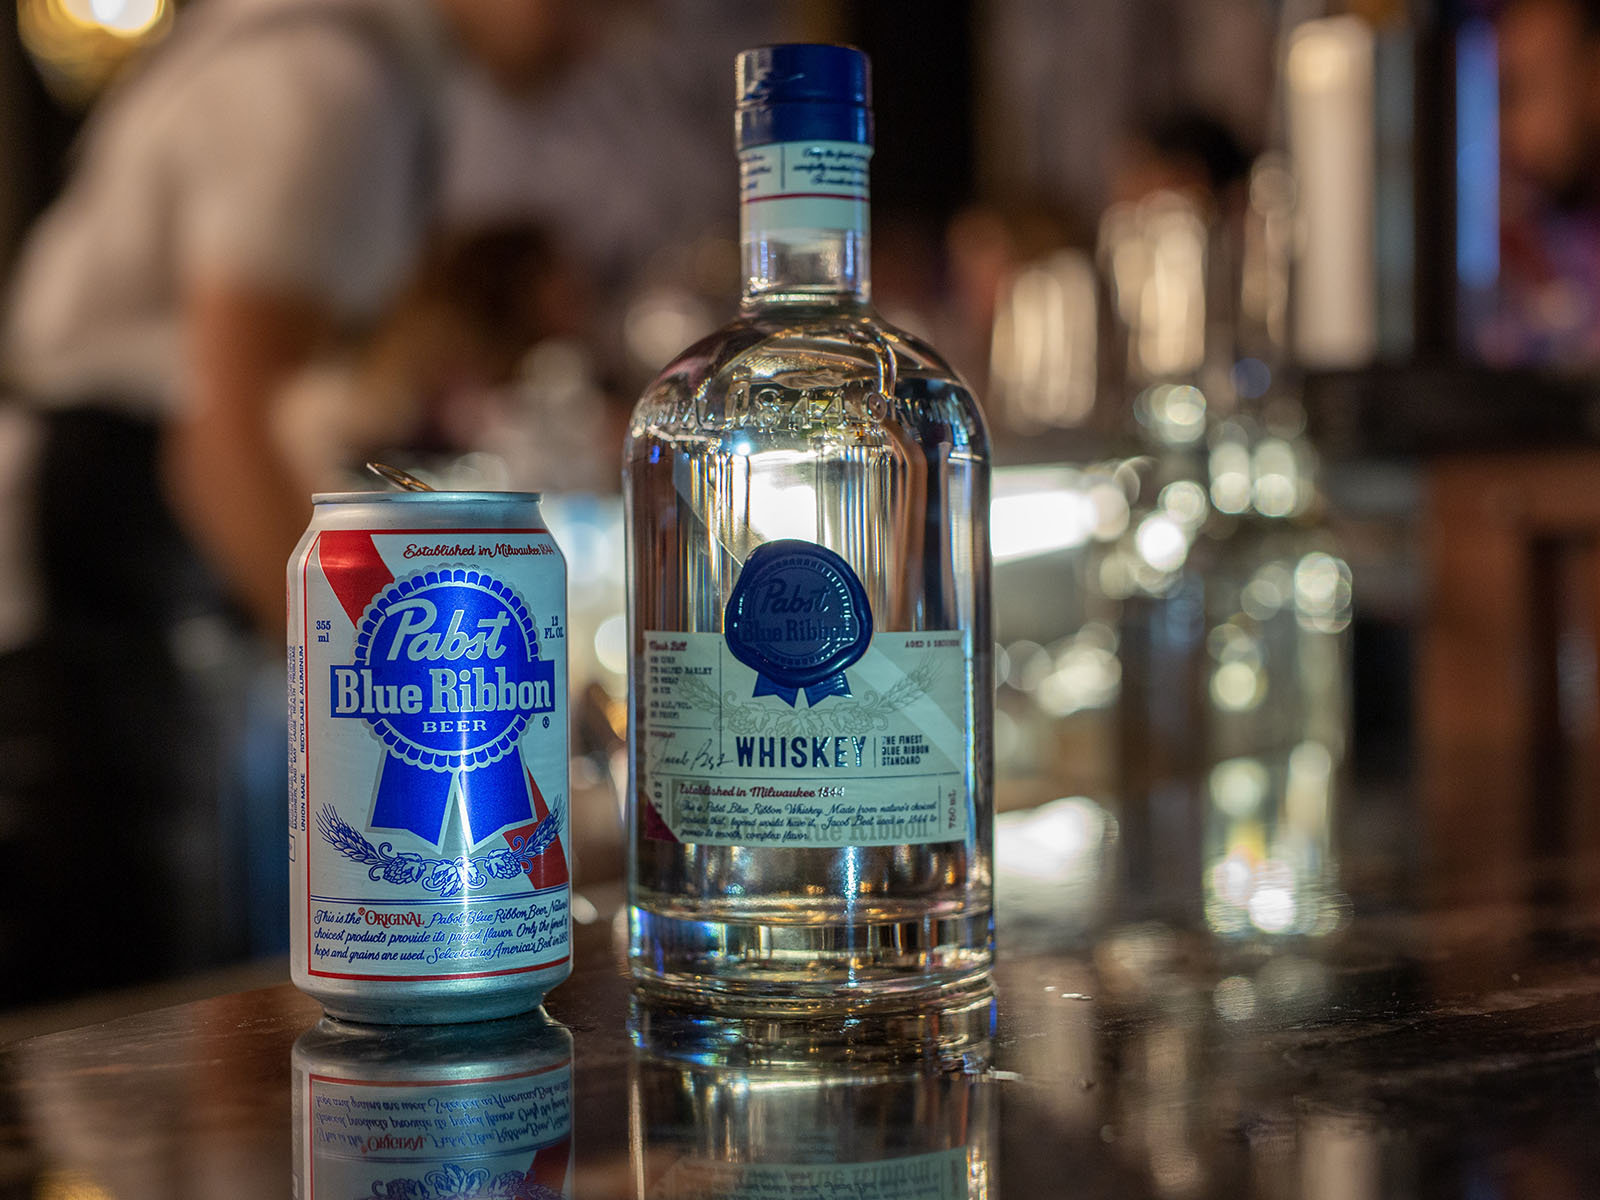 Getting A Taste Of Pabsts Blue Ribbon White Whiskey